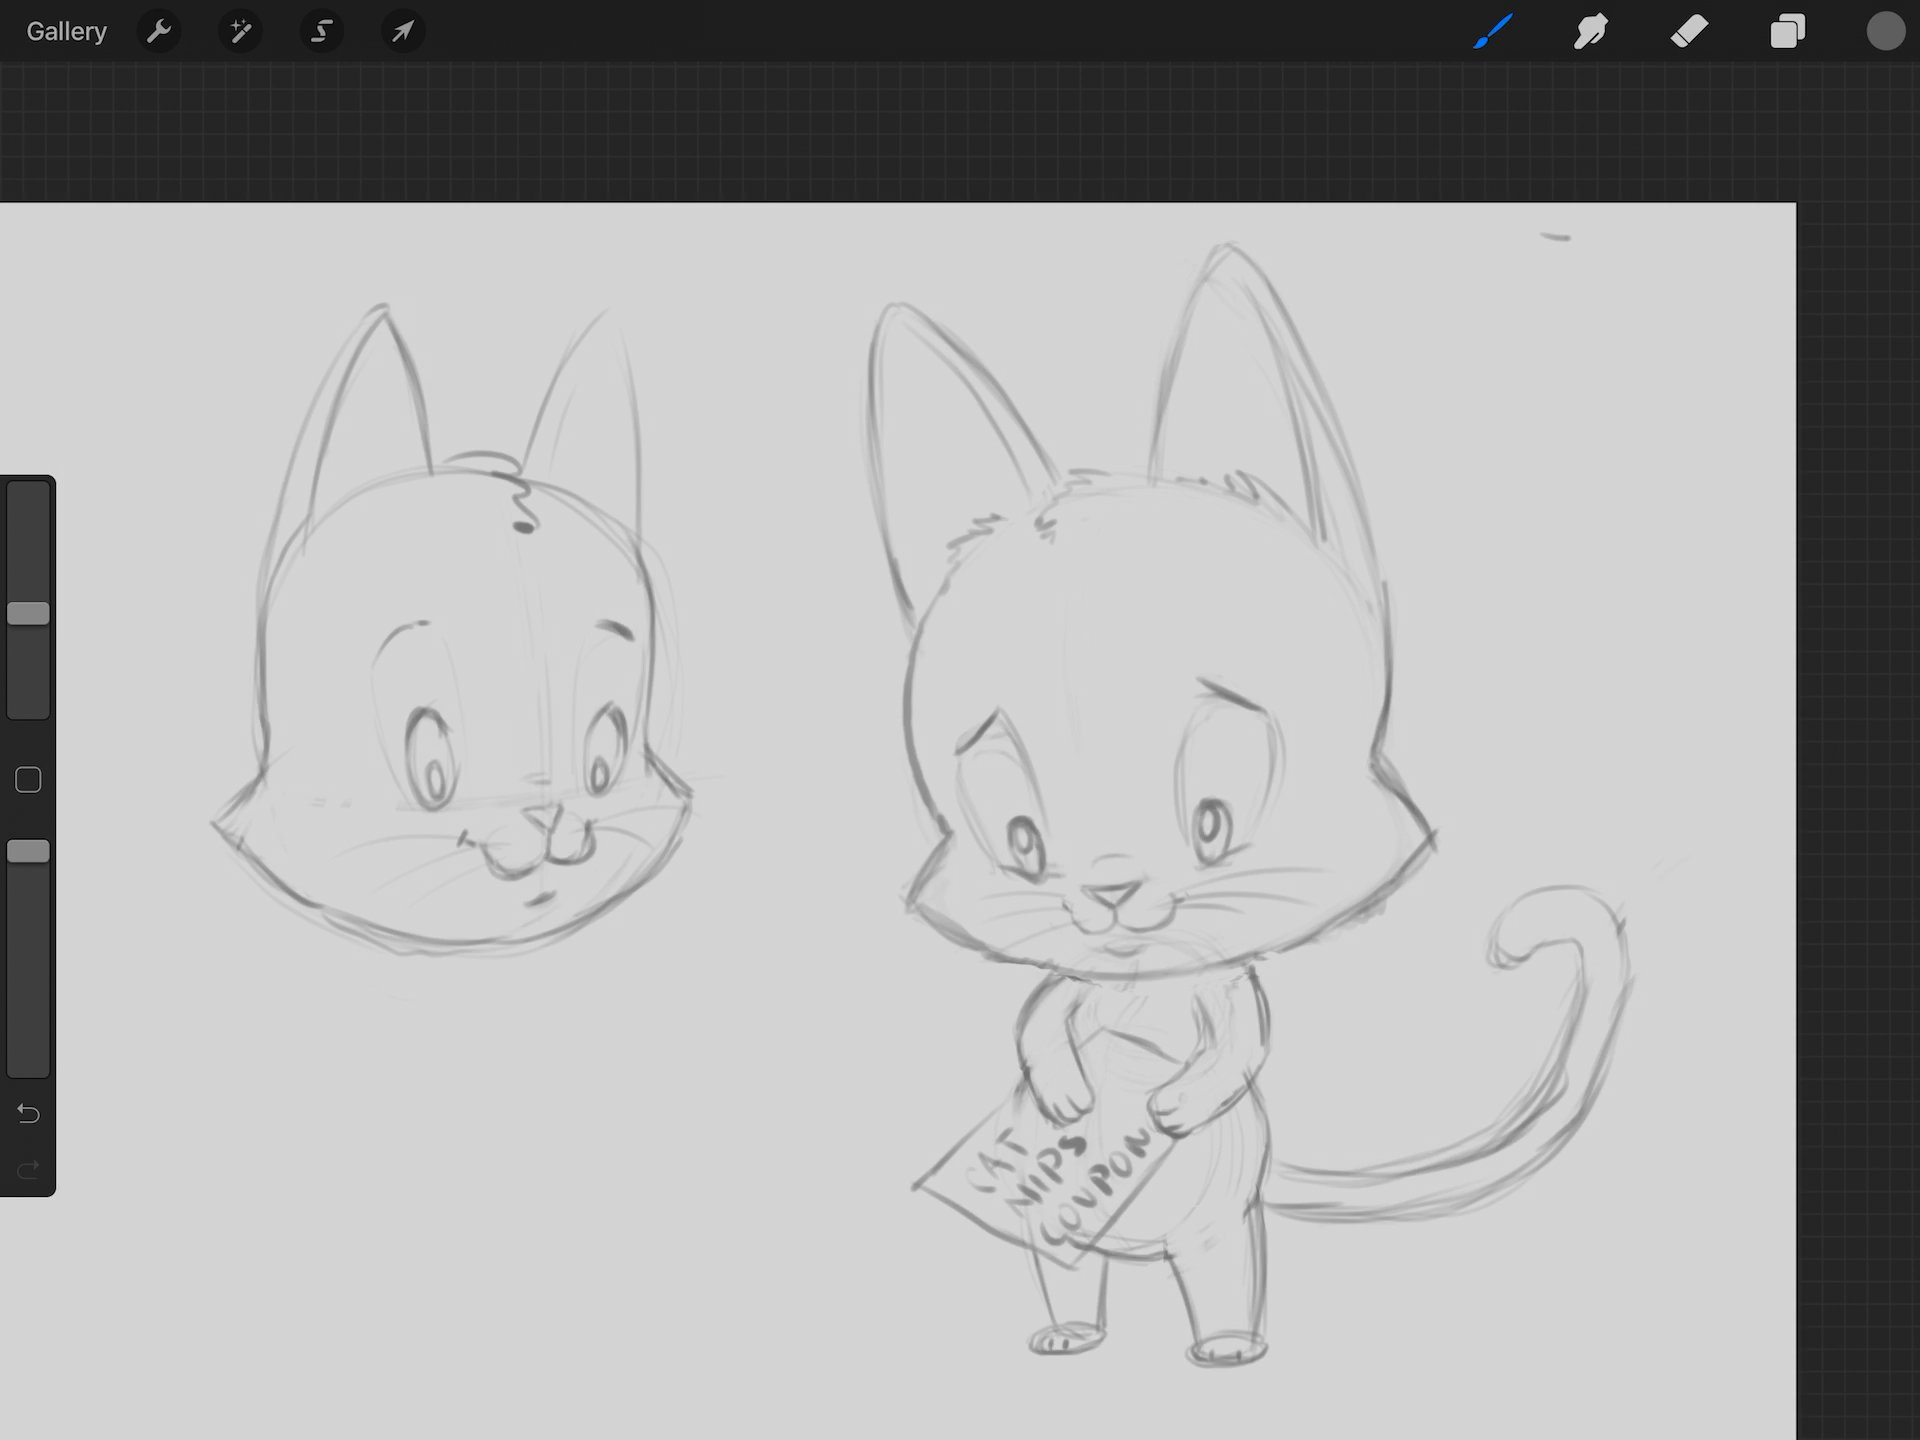 Cute Theory: Sketching Cute Cartoon Characters for